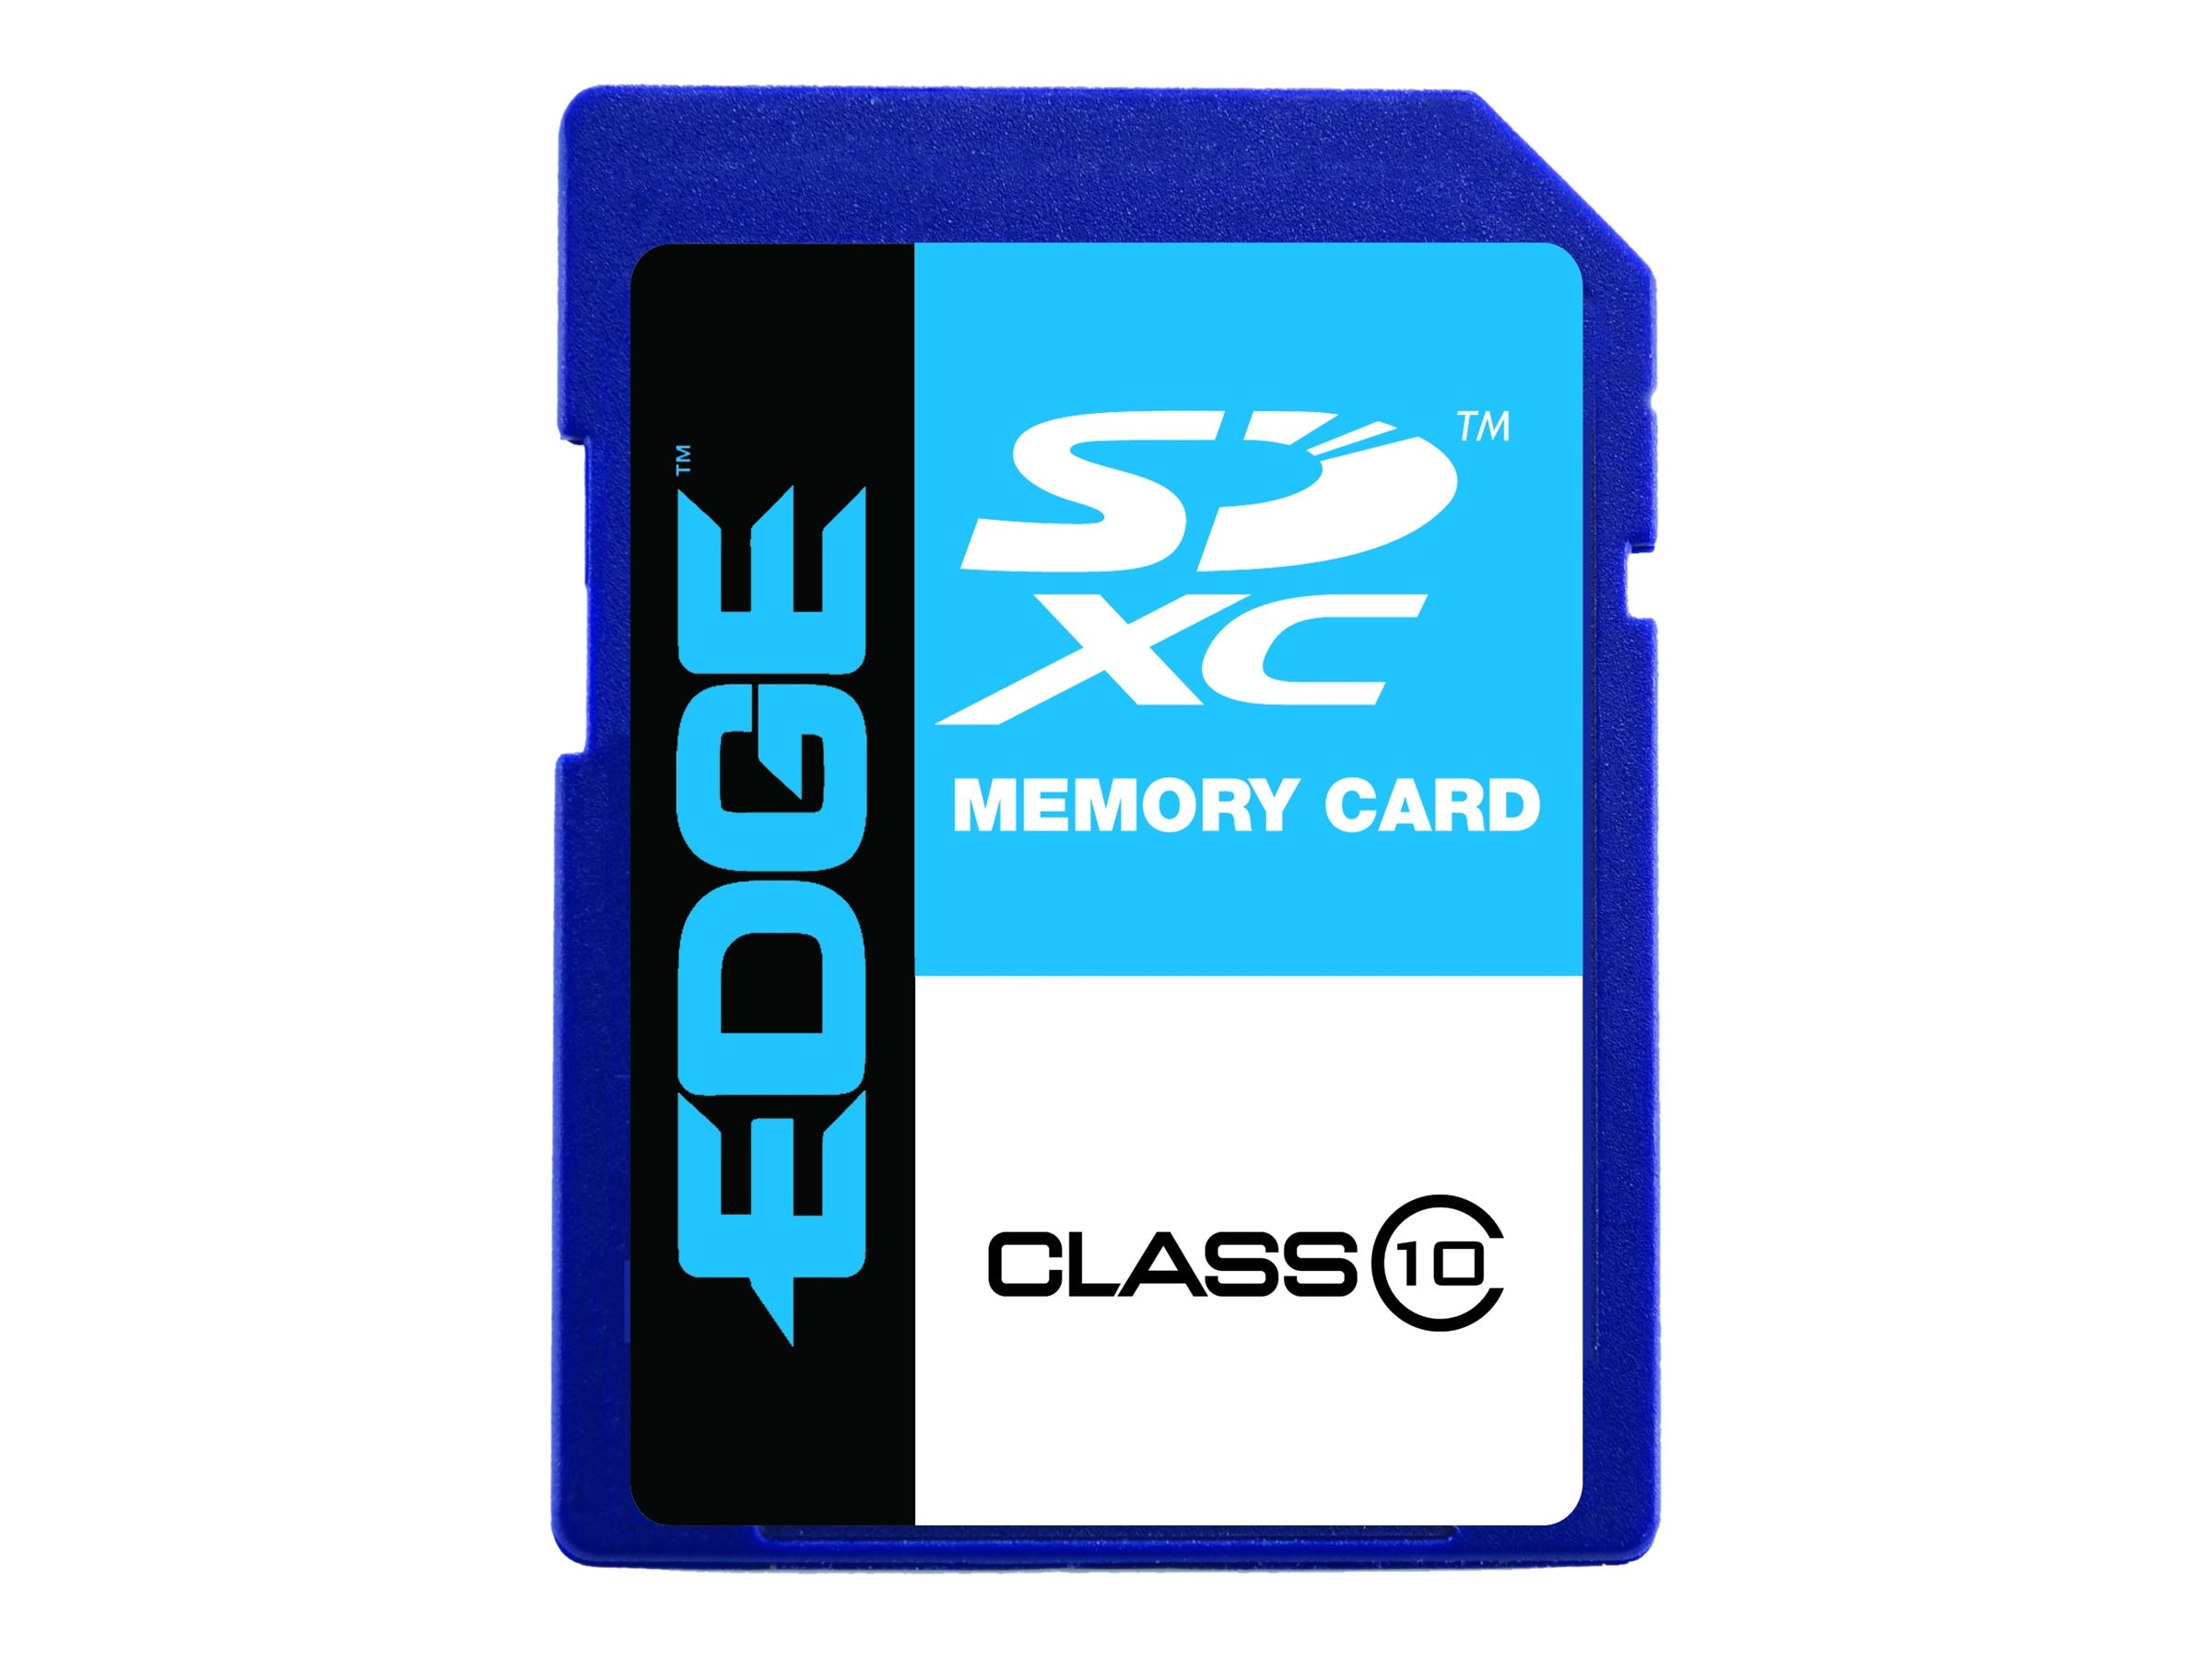 Edge 64GB SDXC Flash Memory Card, Class 10, PE231422, 13626563, Memory - Flash